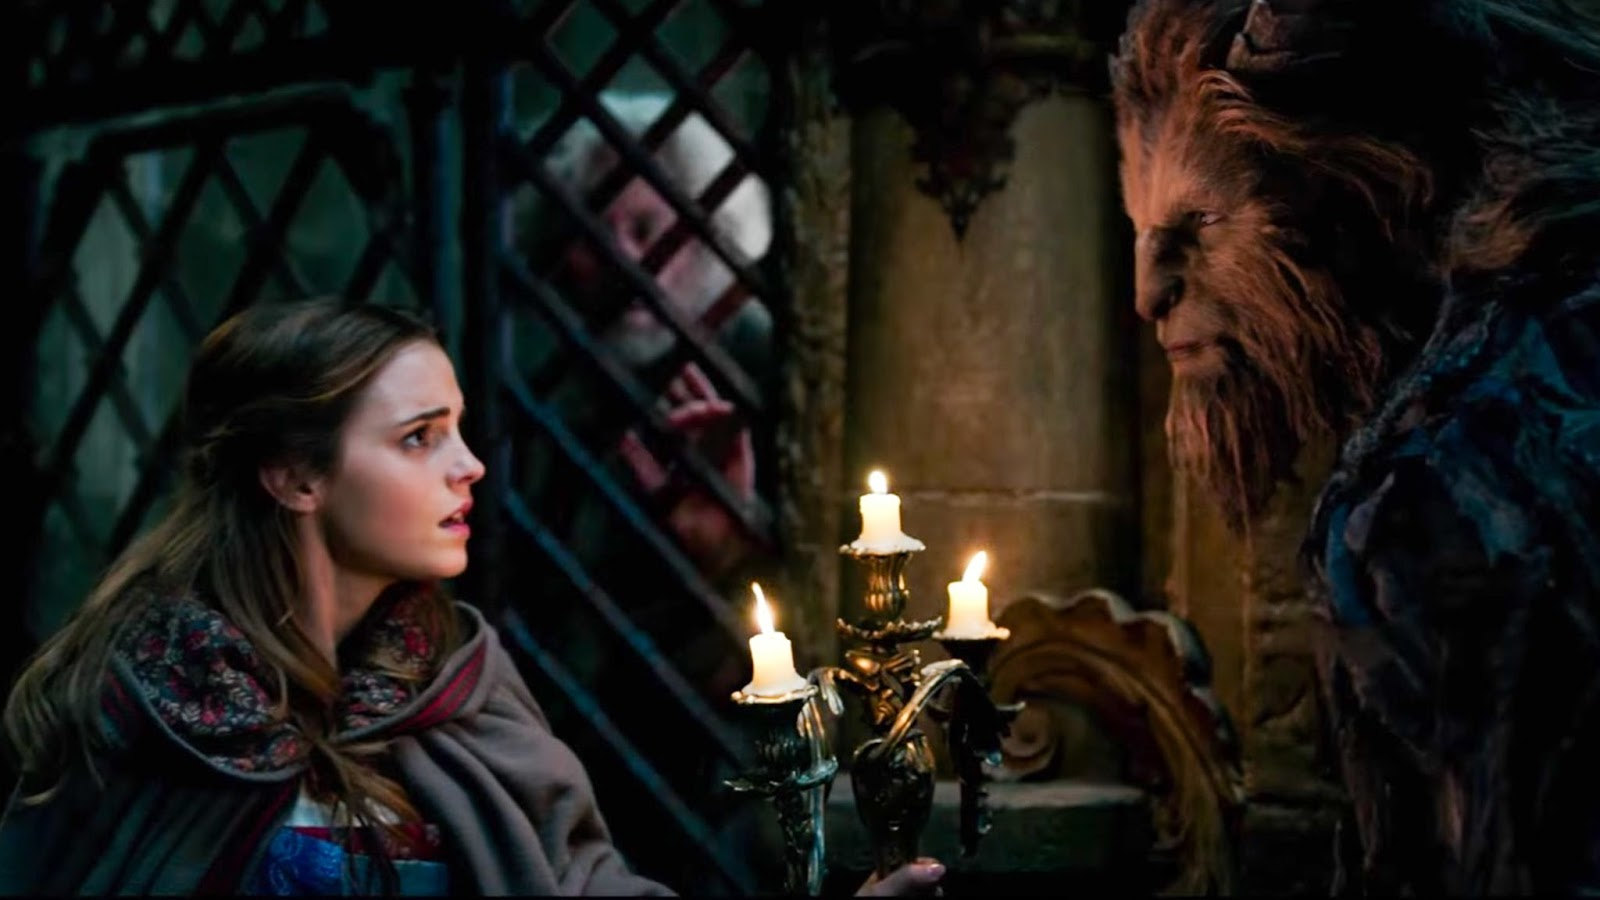 Movie Review: Beauty and the Beast (2017) | Dateline Movies